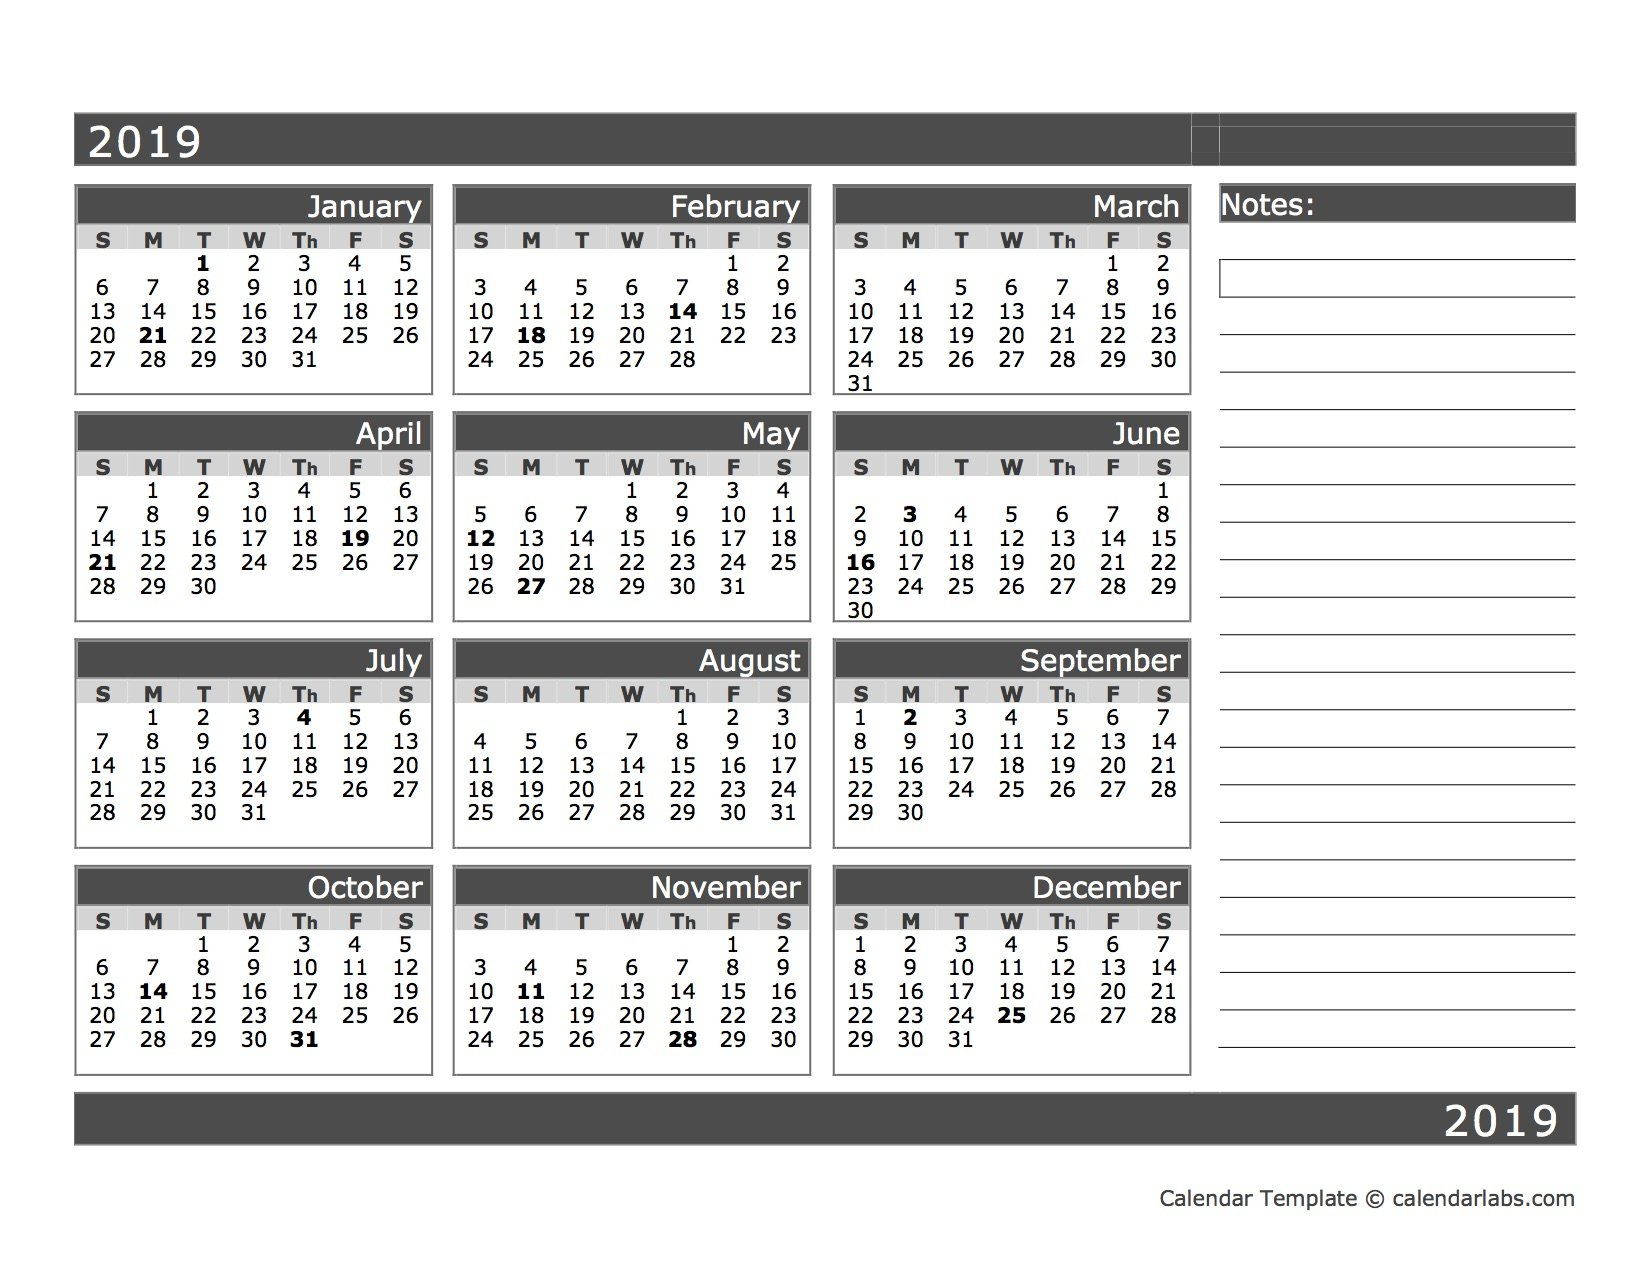 2019 Blank 12 Month Calendar In One Page – Free Printable Printable And Editable 12 Month Calendars